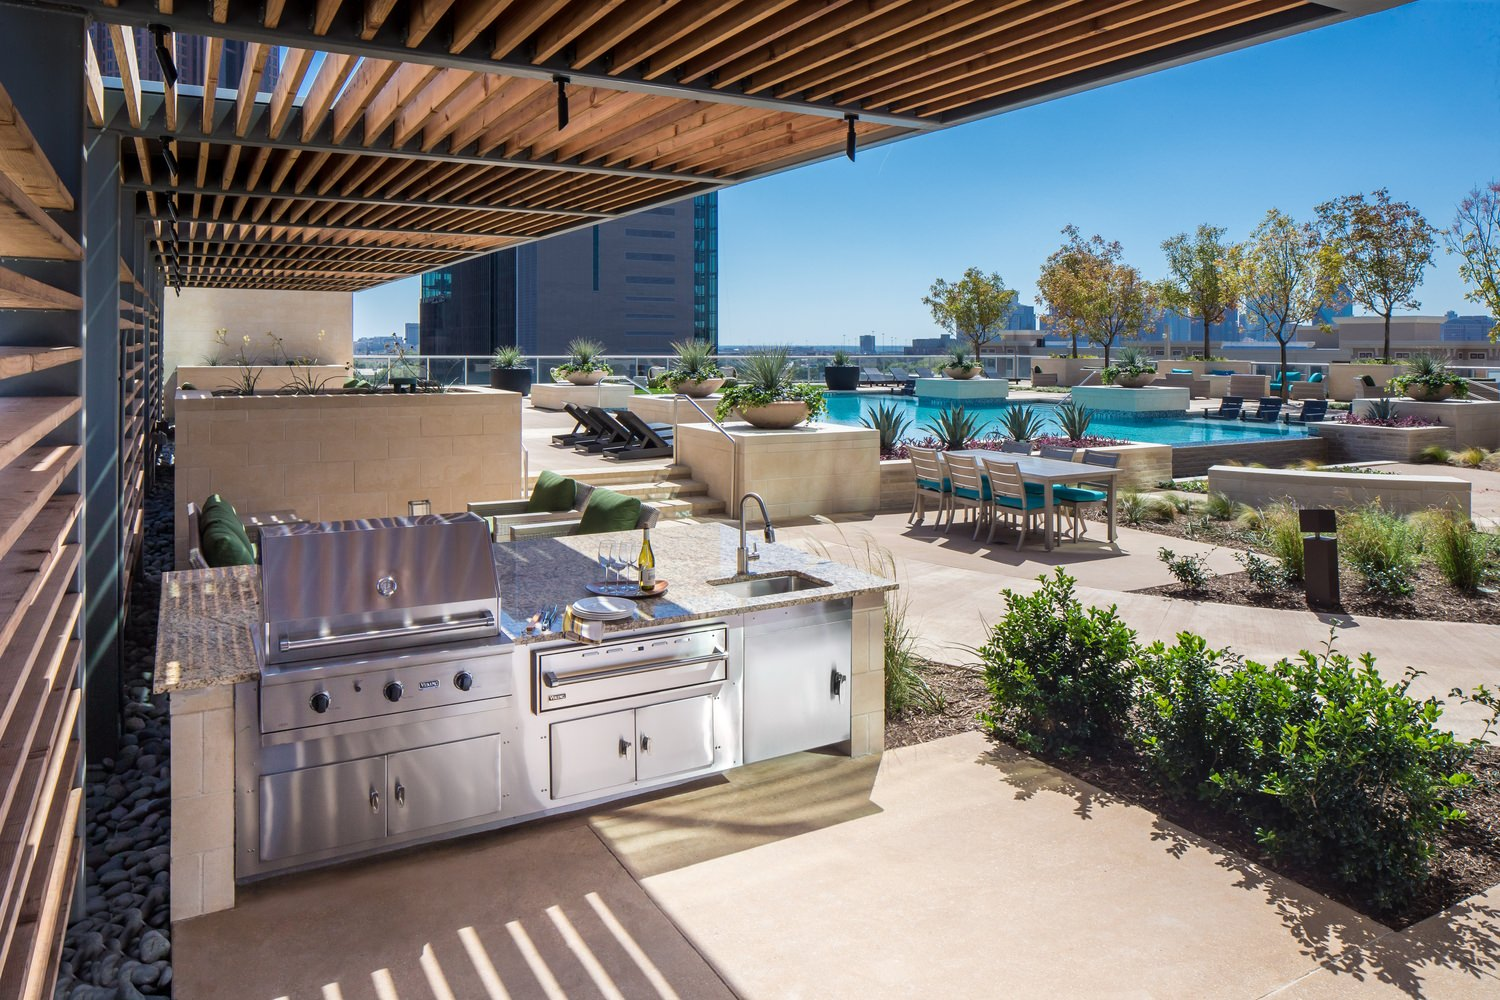 Outdoor pool area with appliances and furniture that is next to some buildings.